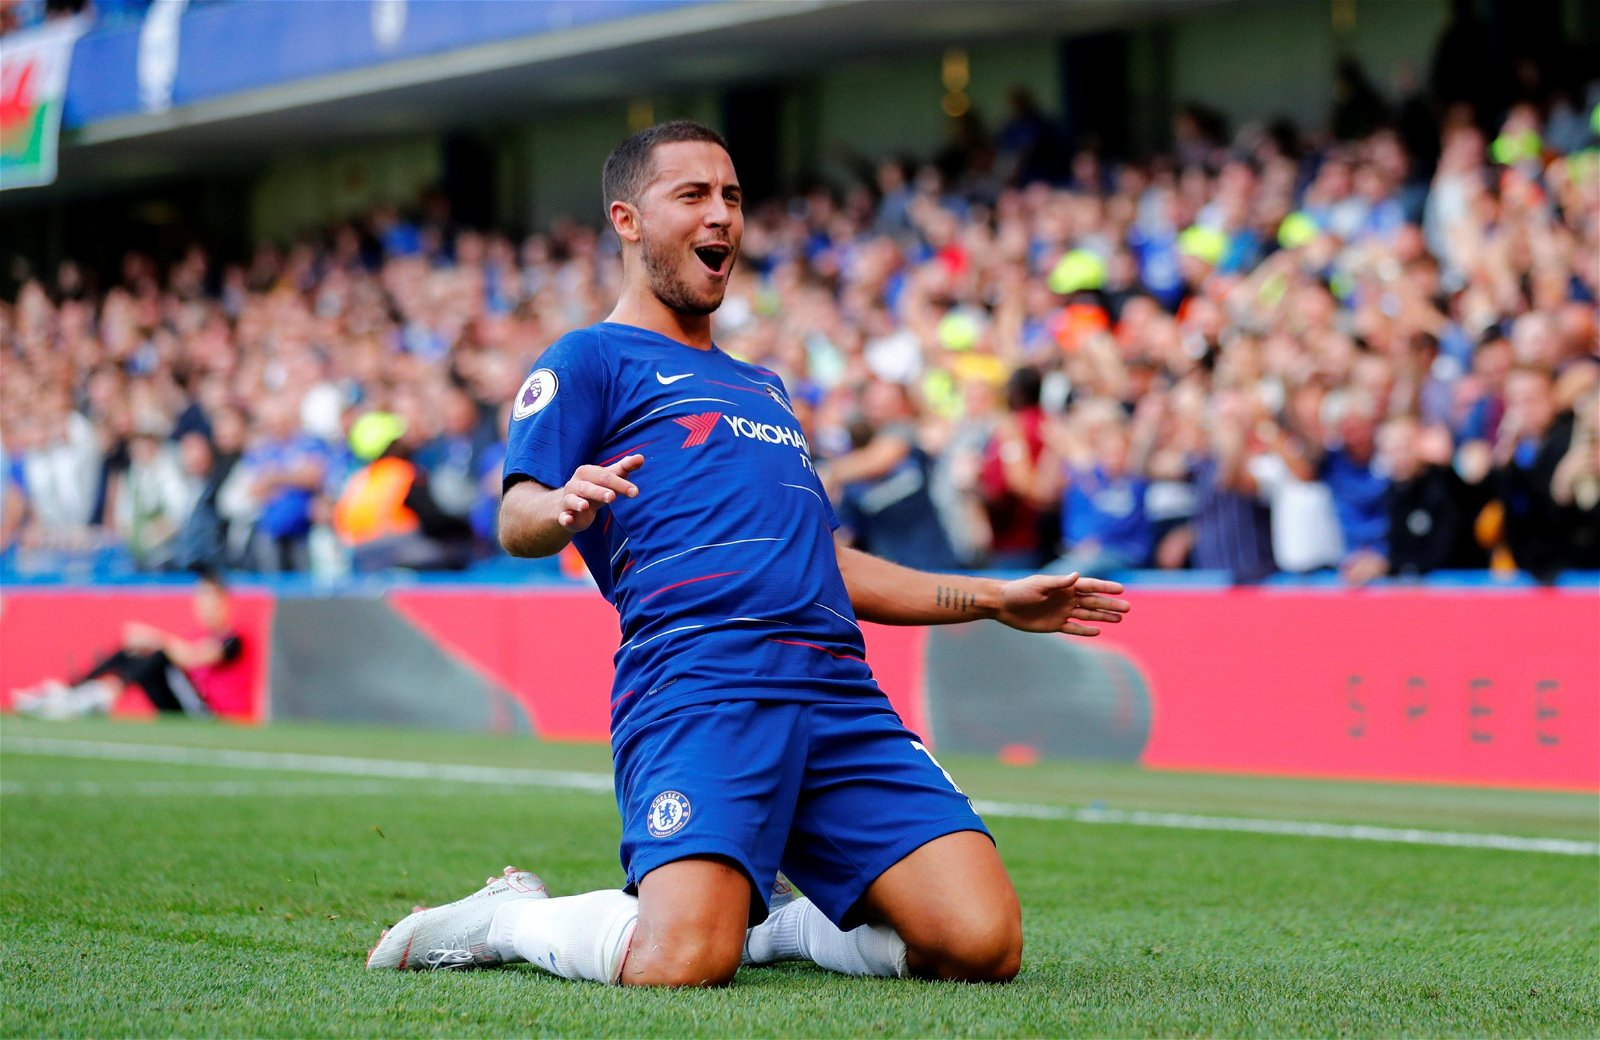 Sarri's target of 40 goals could be what makes Hazard the best in the world